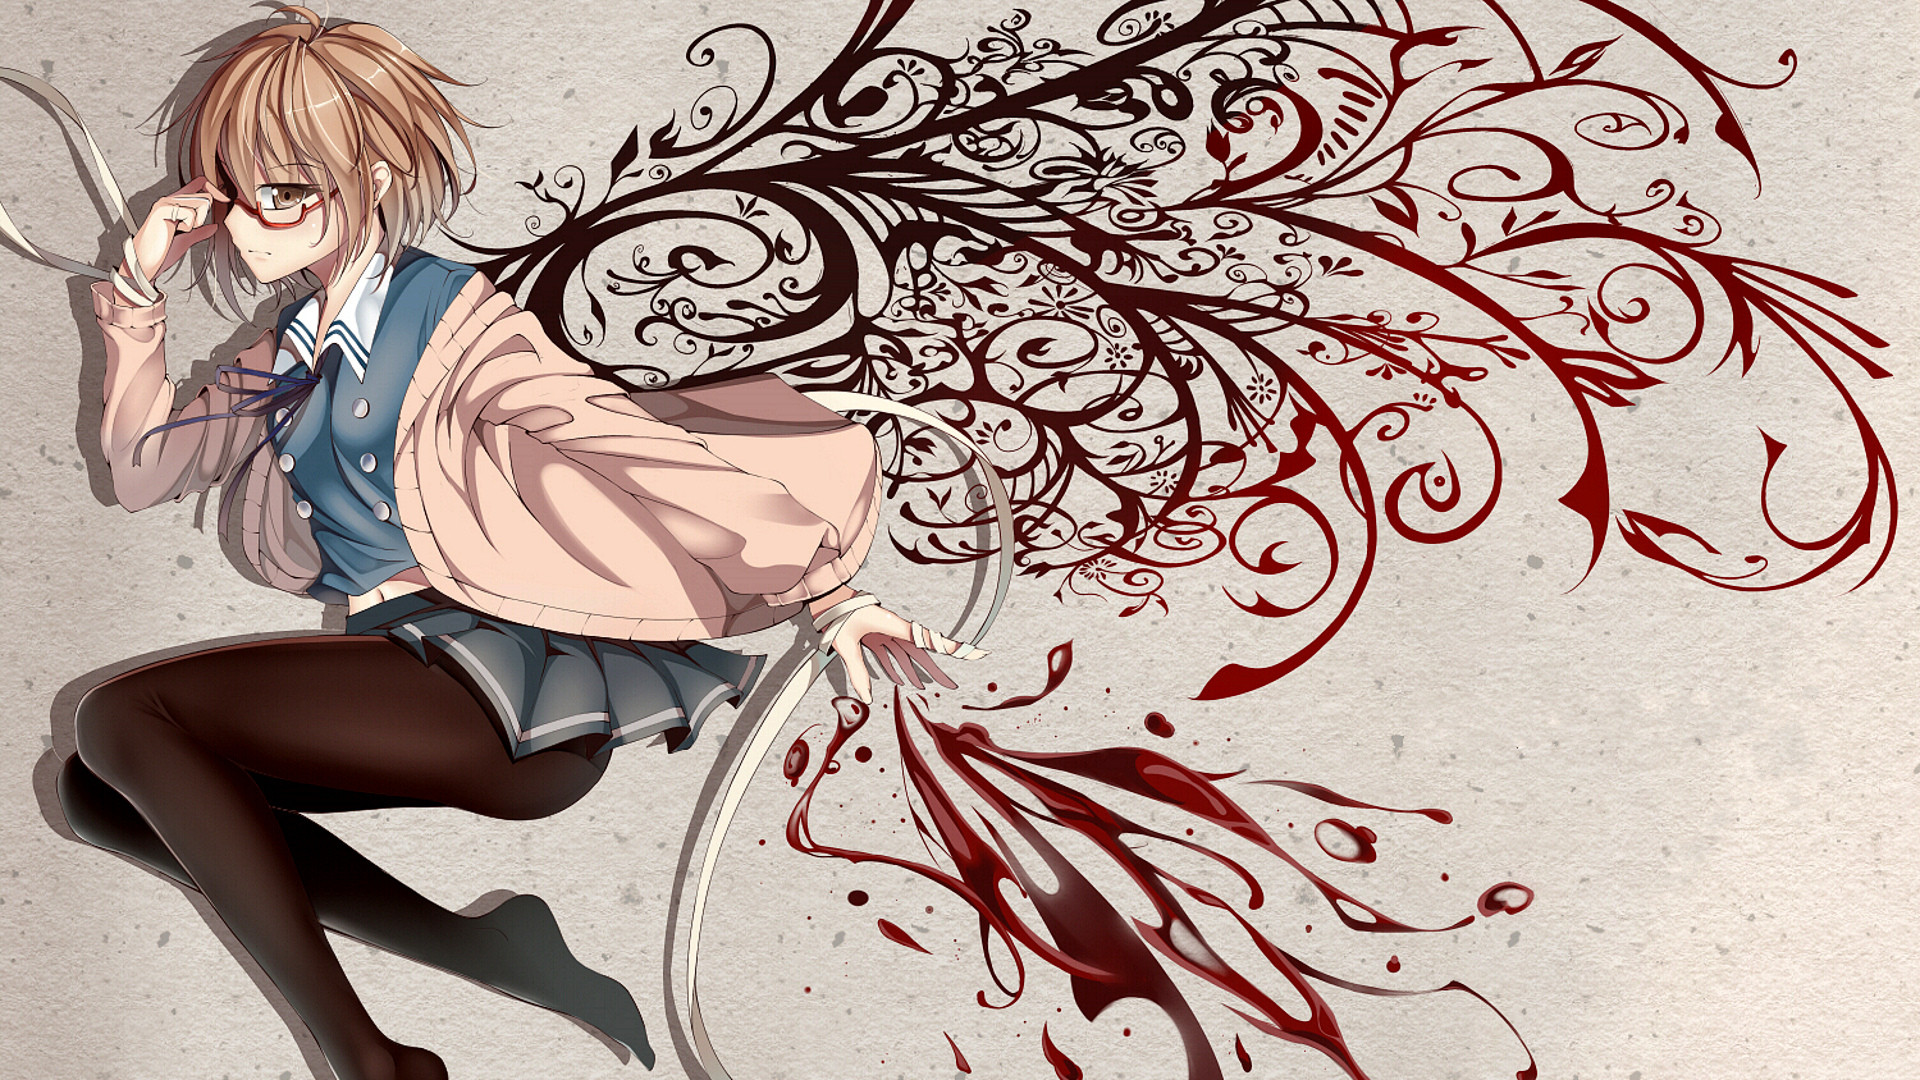 Chinese Cute Girl Hd Wallpaper Beyond The Boundary Full Hd Wallpaper And Background